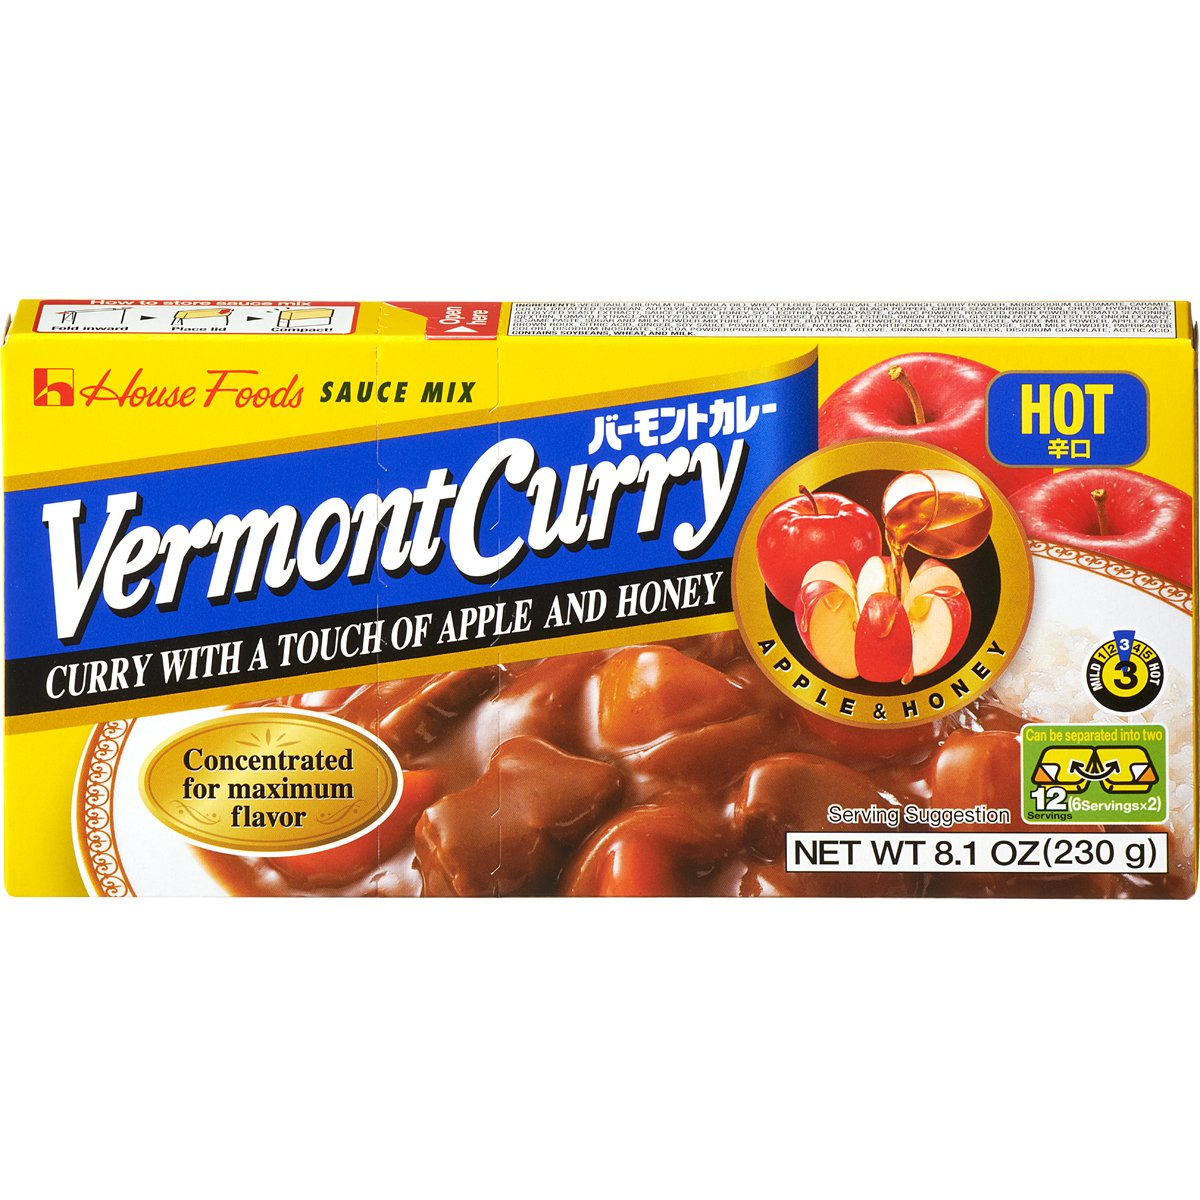 House Foods Vermont Curry, Hot, 8.1-Ounce Boxes (Pack of 10) by House Foods (Image #1)